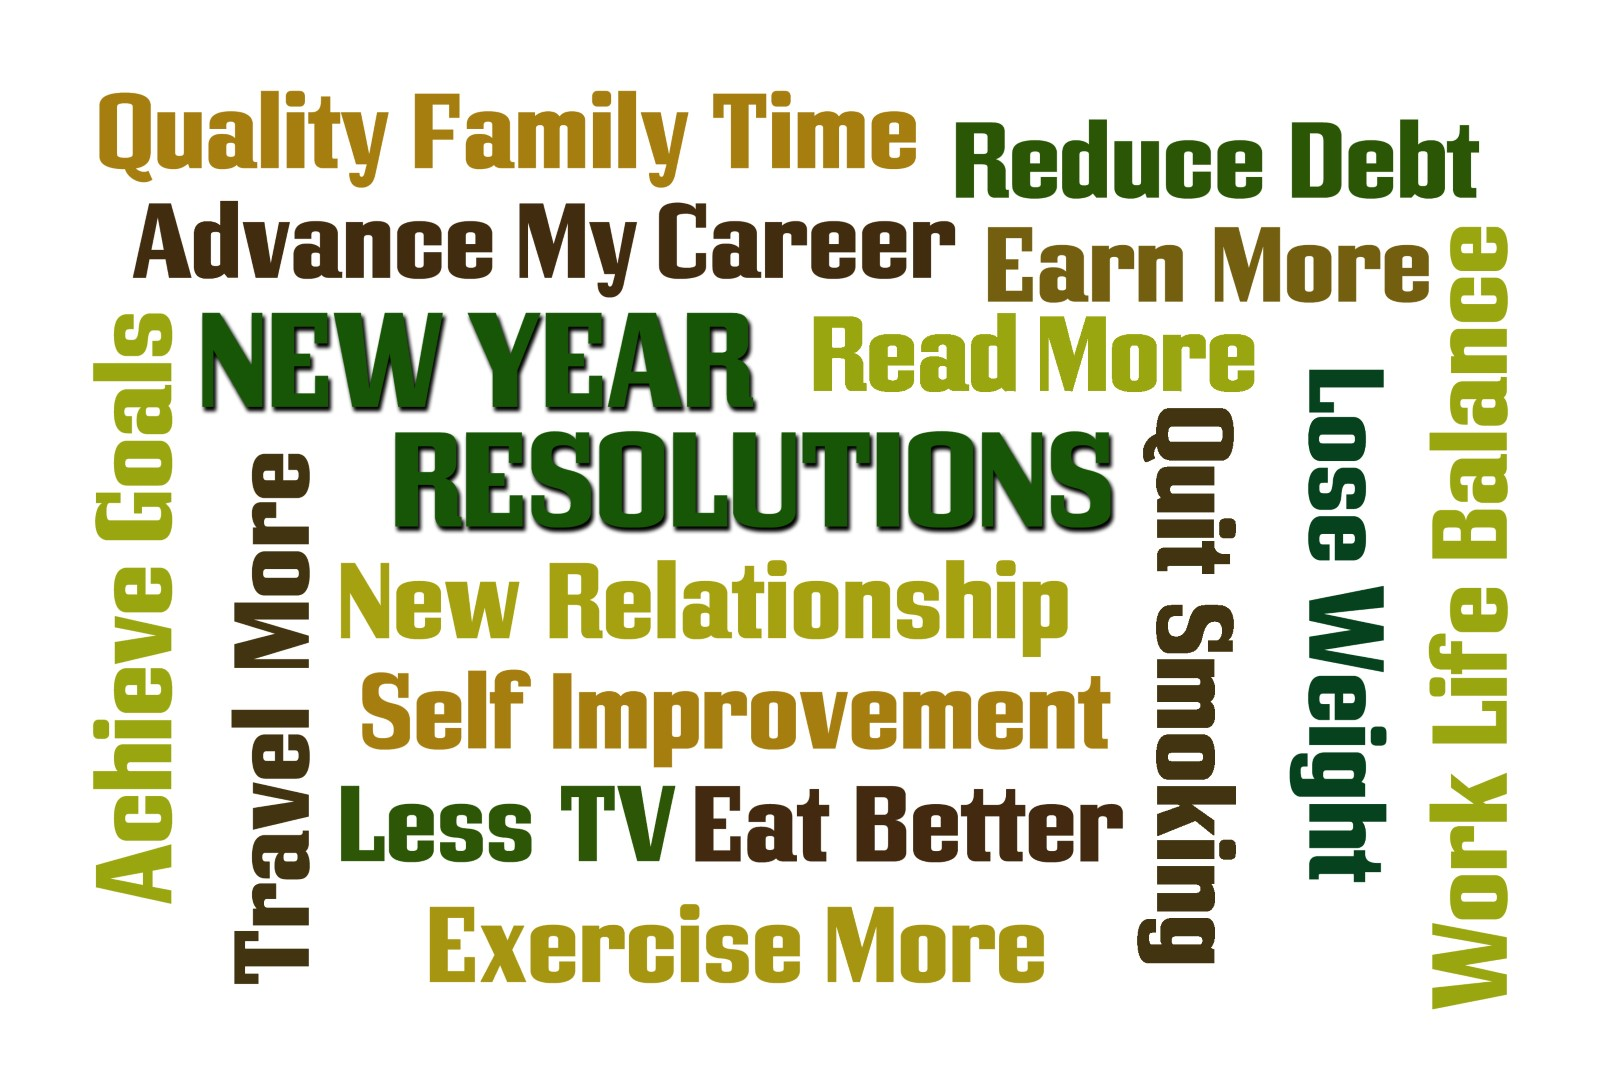 Tips for Keeping Your New Years Resolutions for 2015